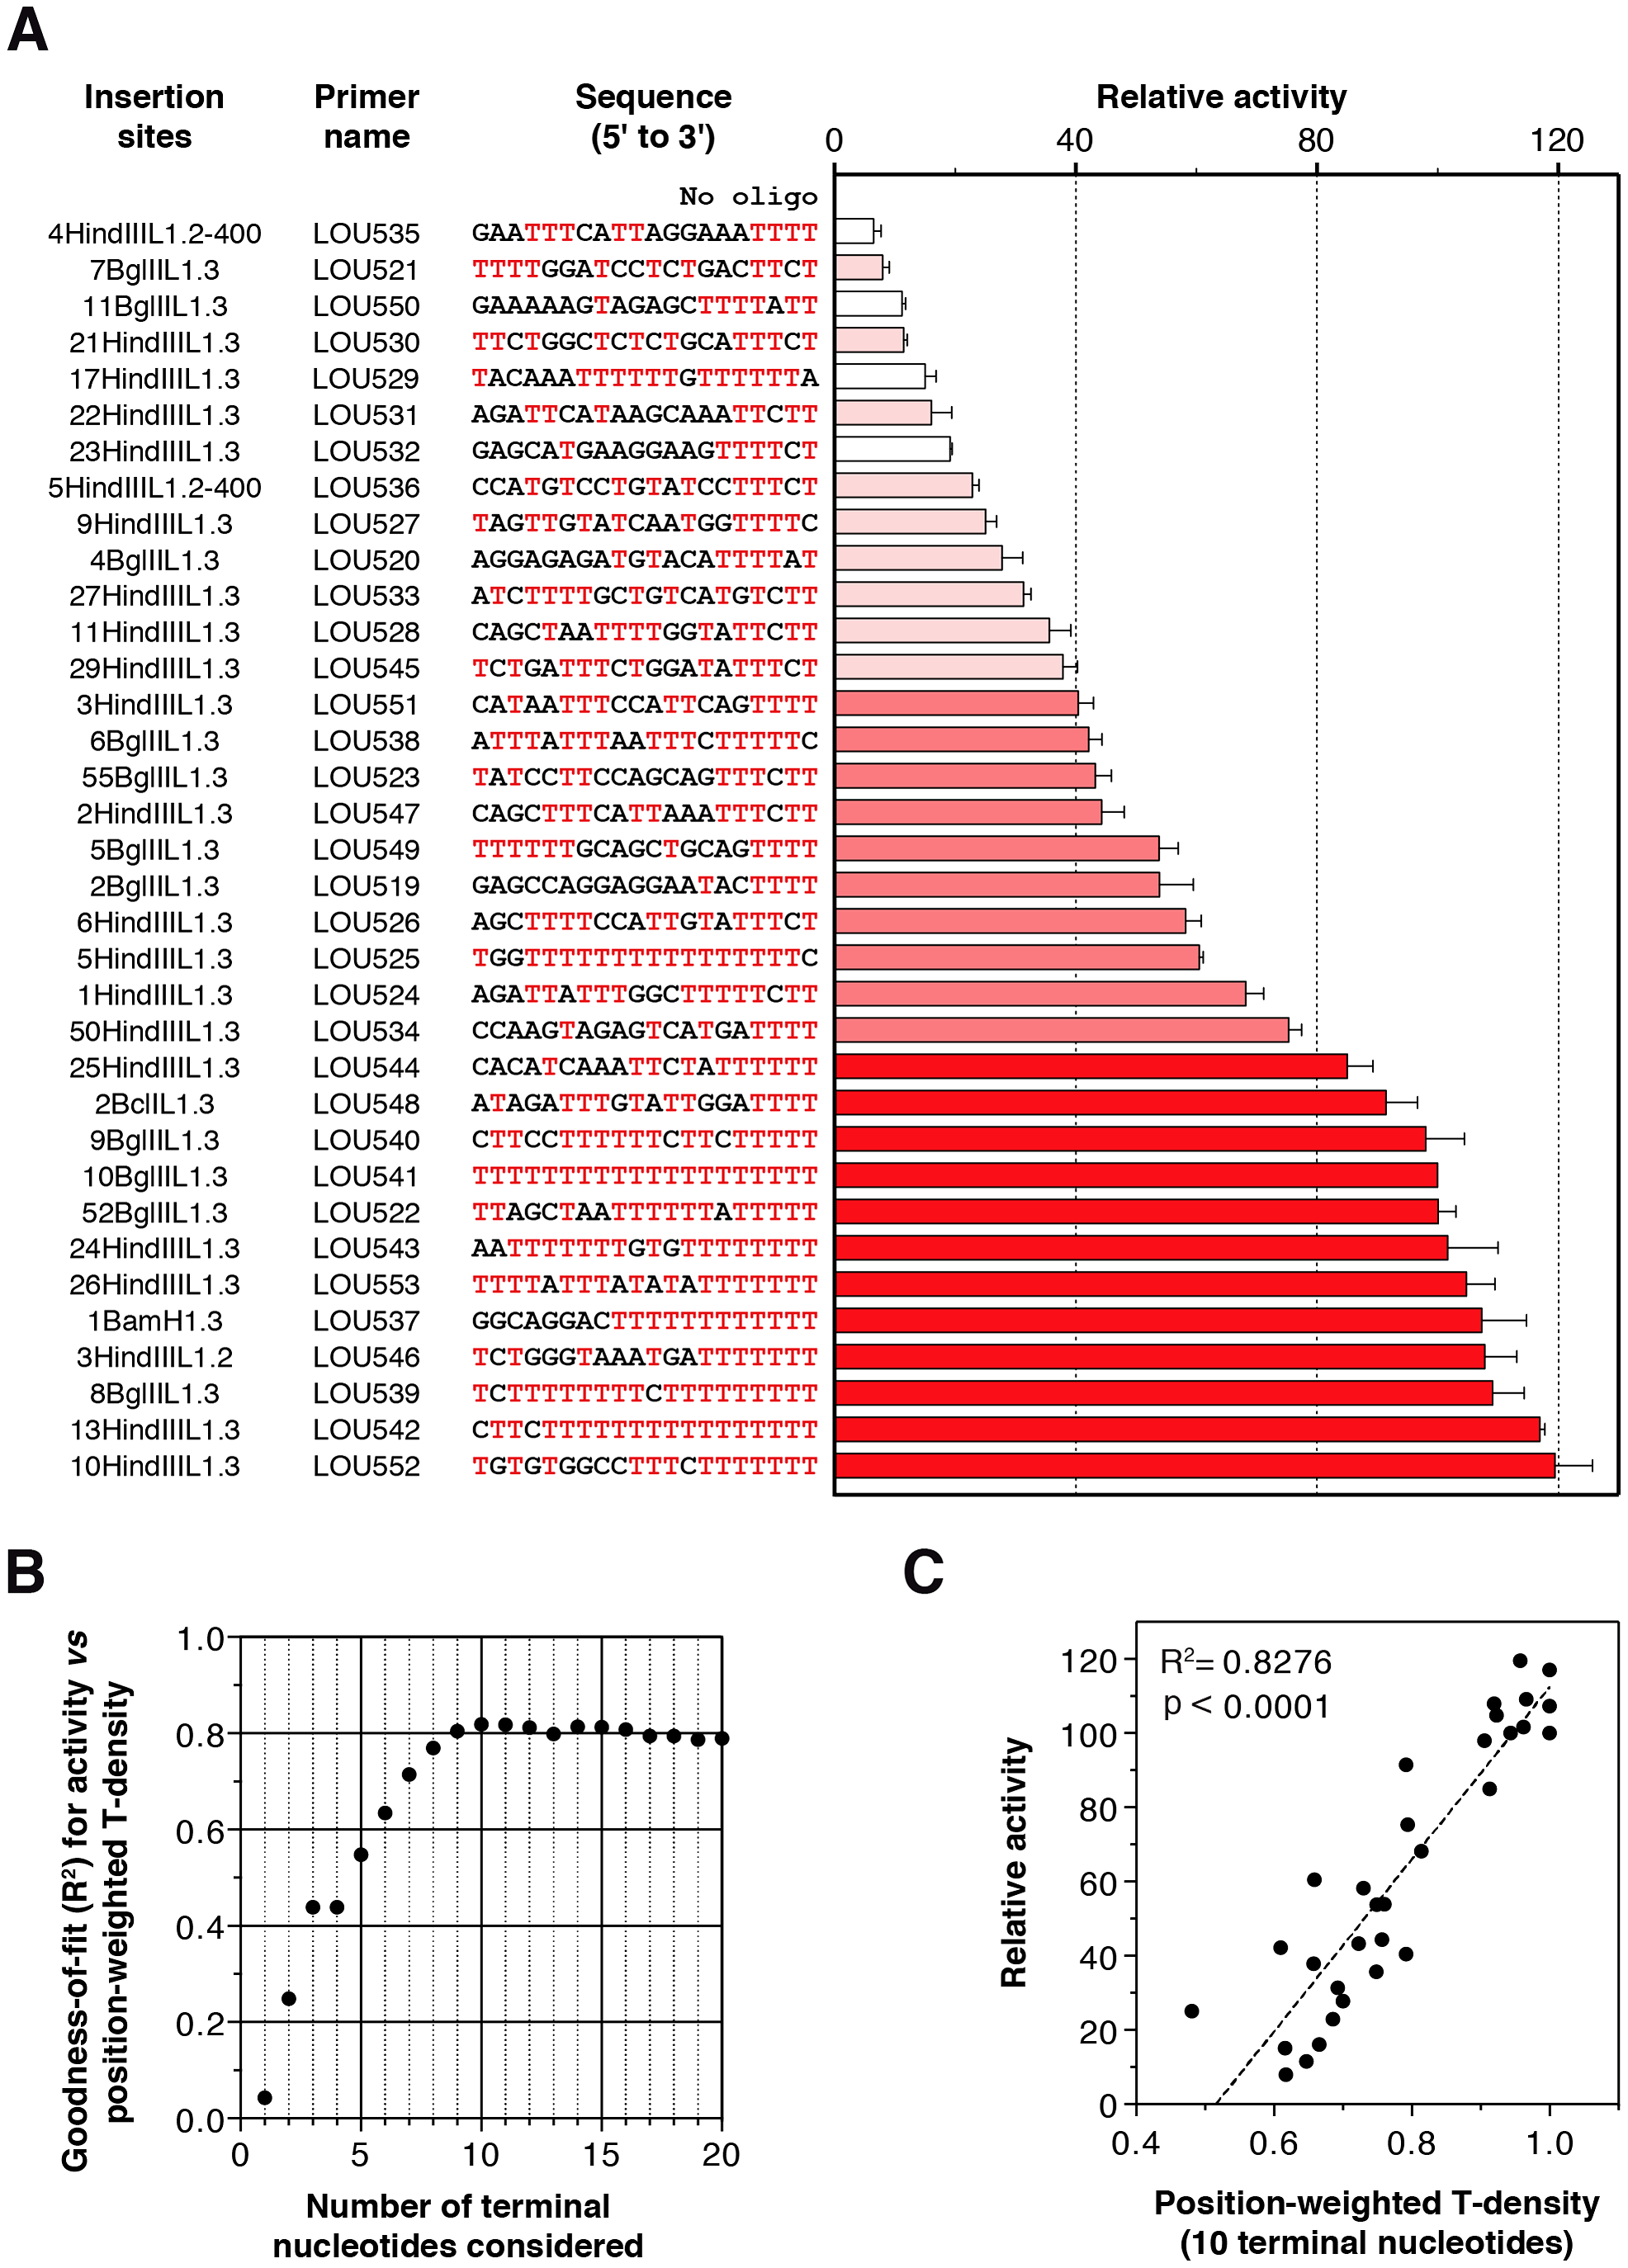 Extension of primers mimicking <i>bona fide</i> human L1 insertion sites by the human L1 RNP.